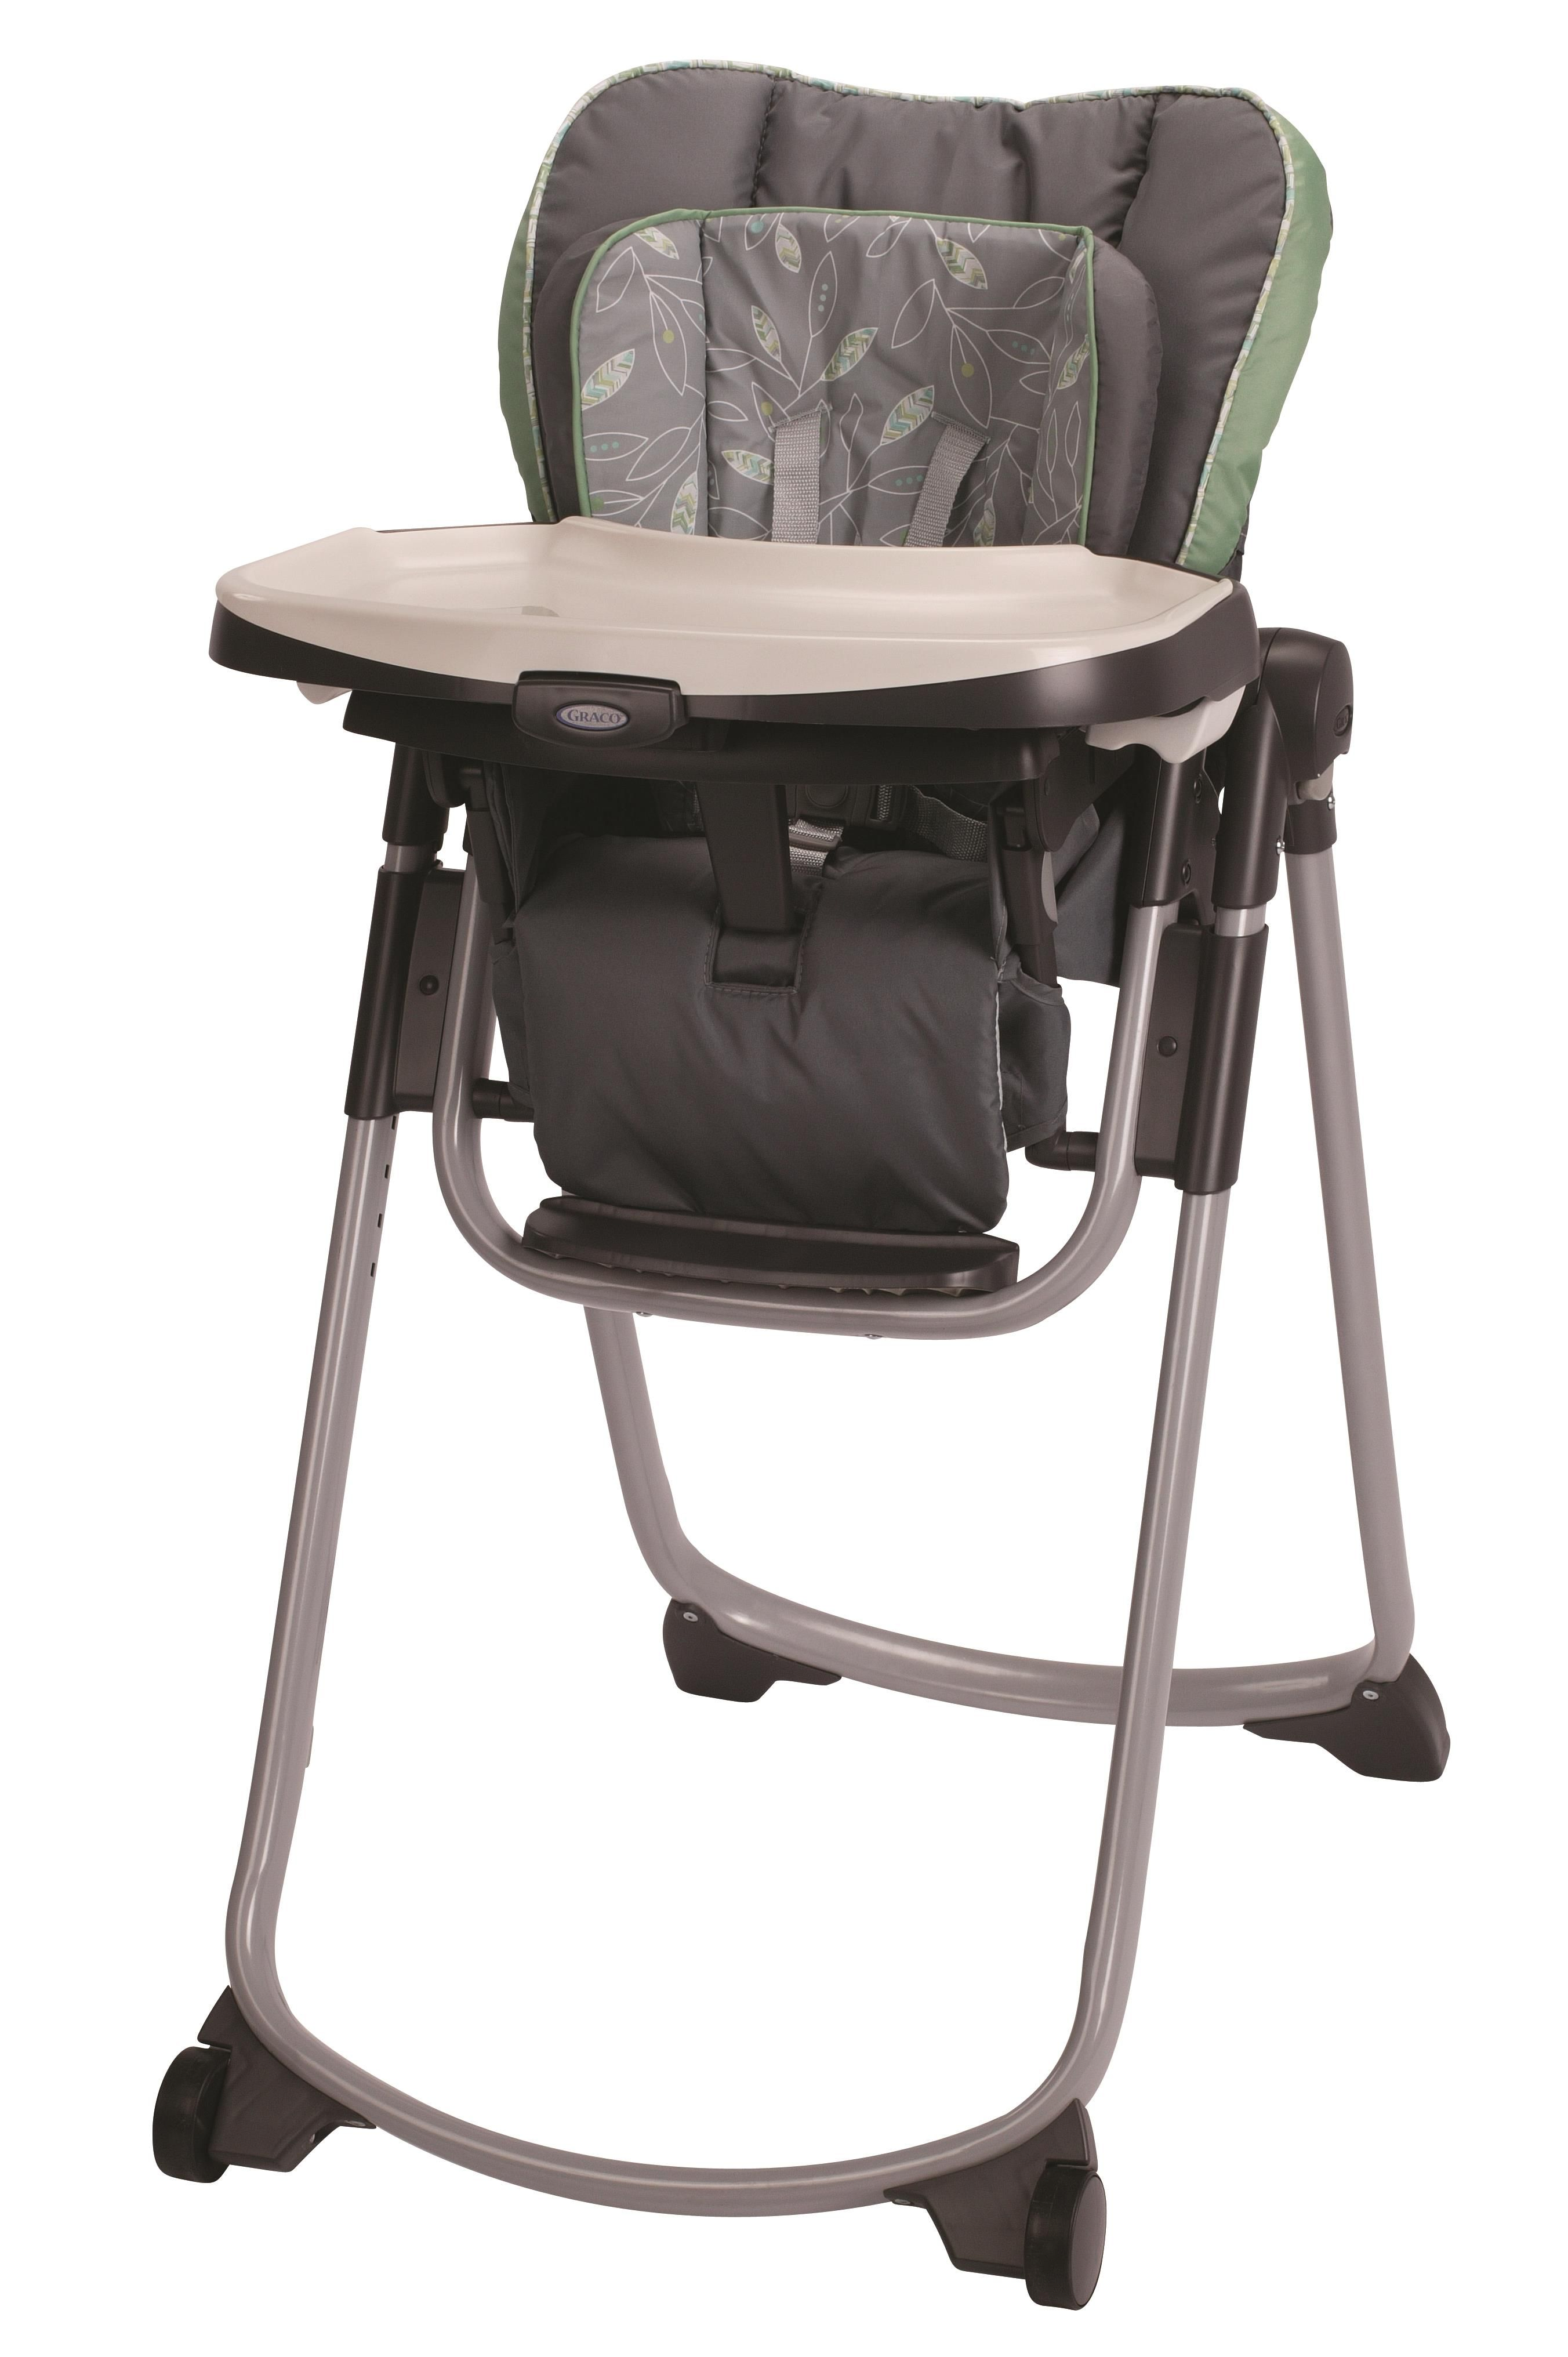 Graco® Slim Spaces™ High Chair In Trendy Green And Grey Greenhill Fashion.  Slim